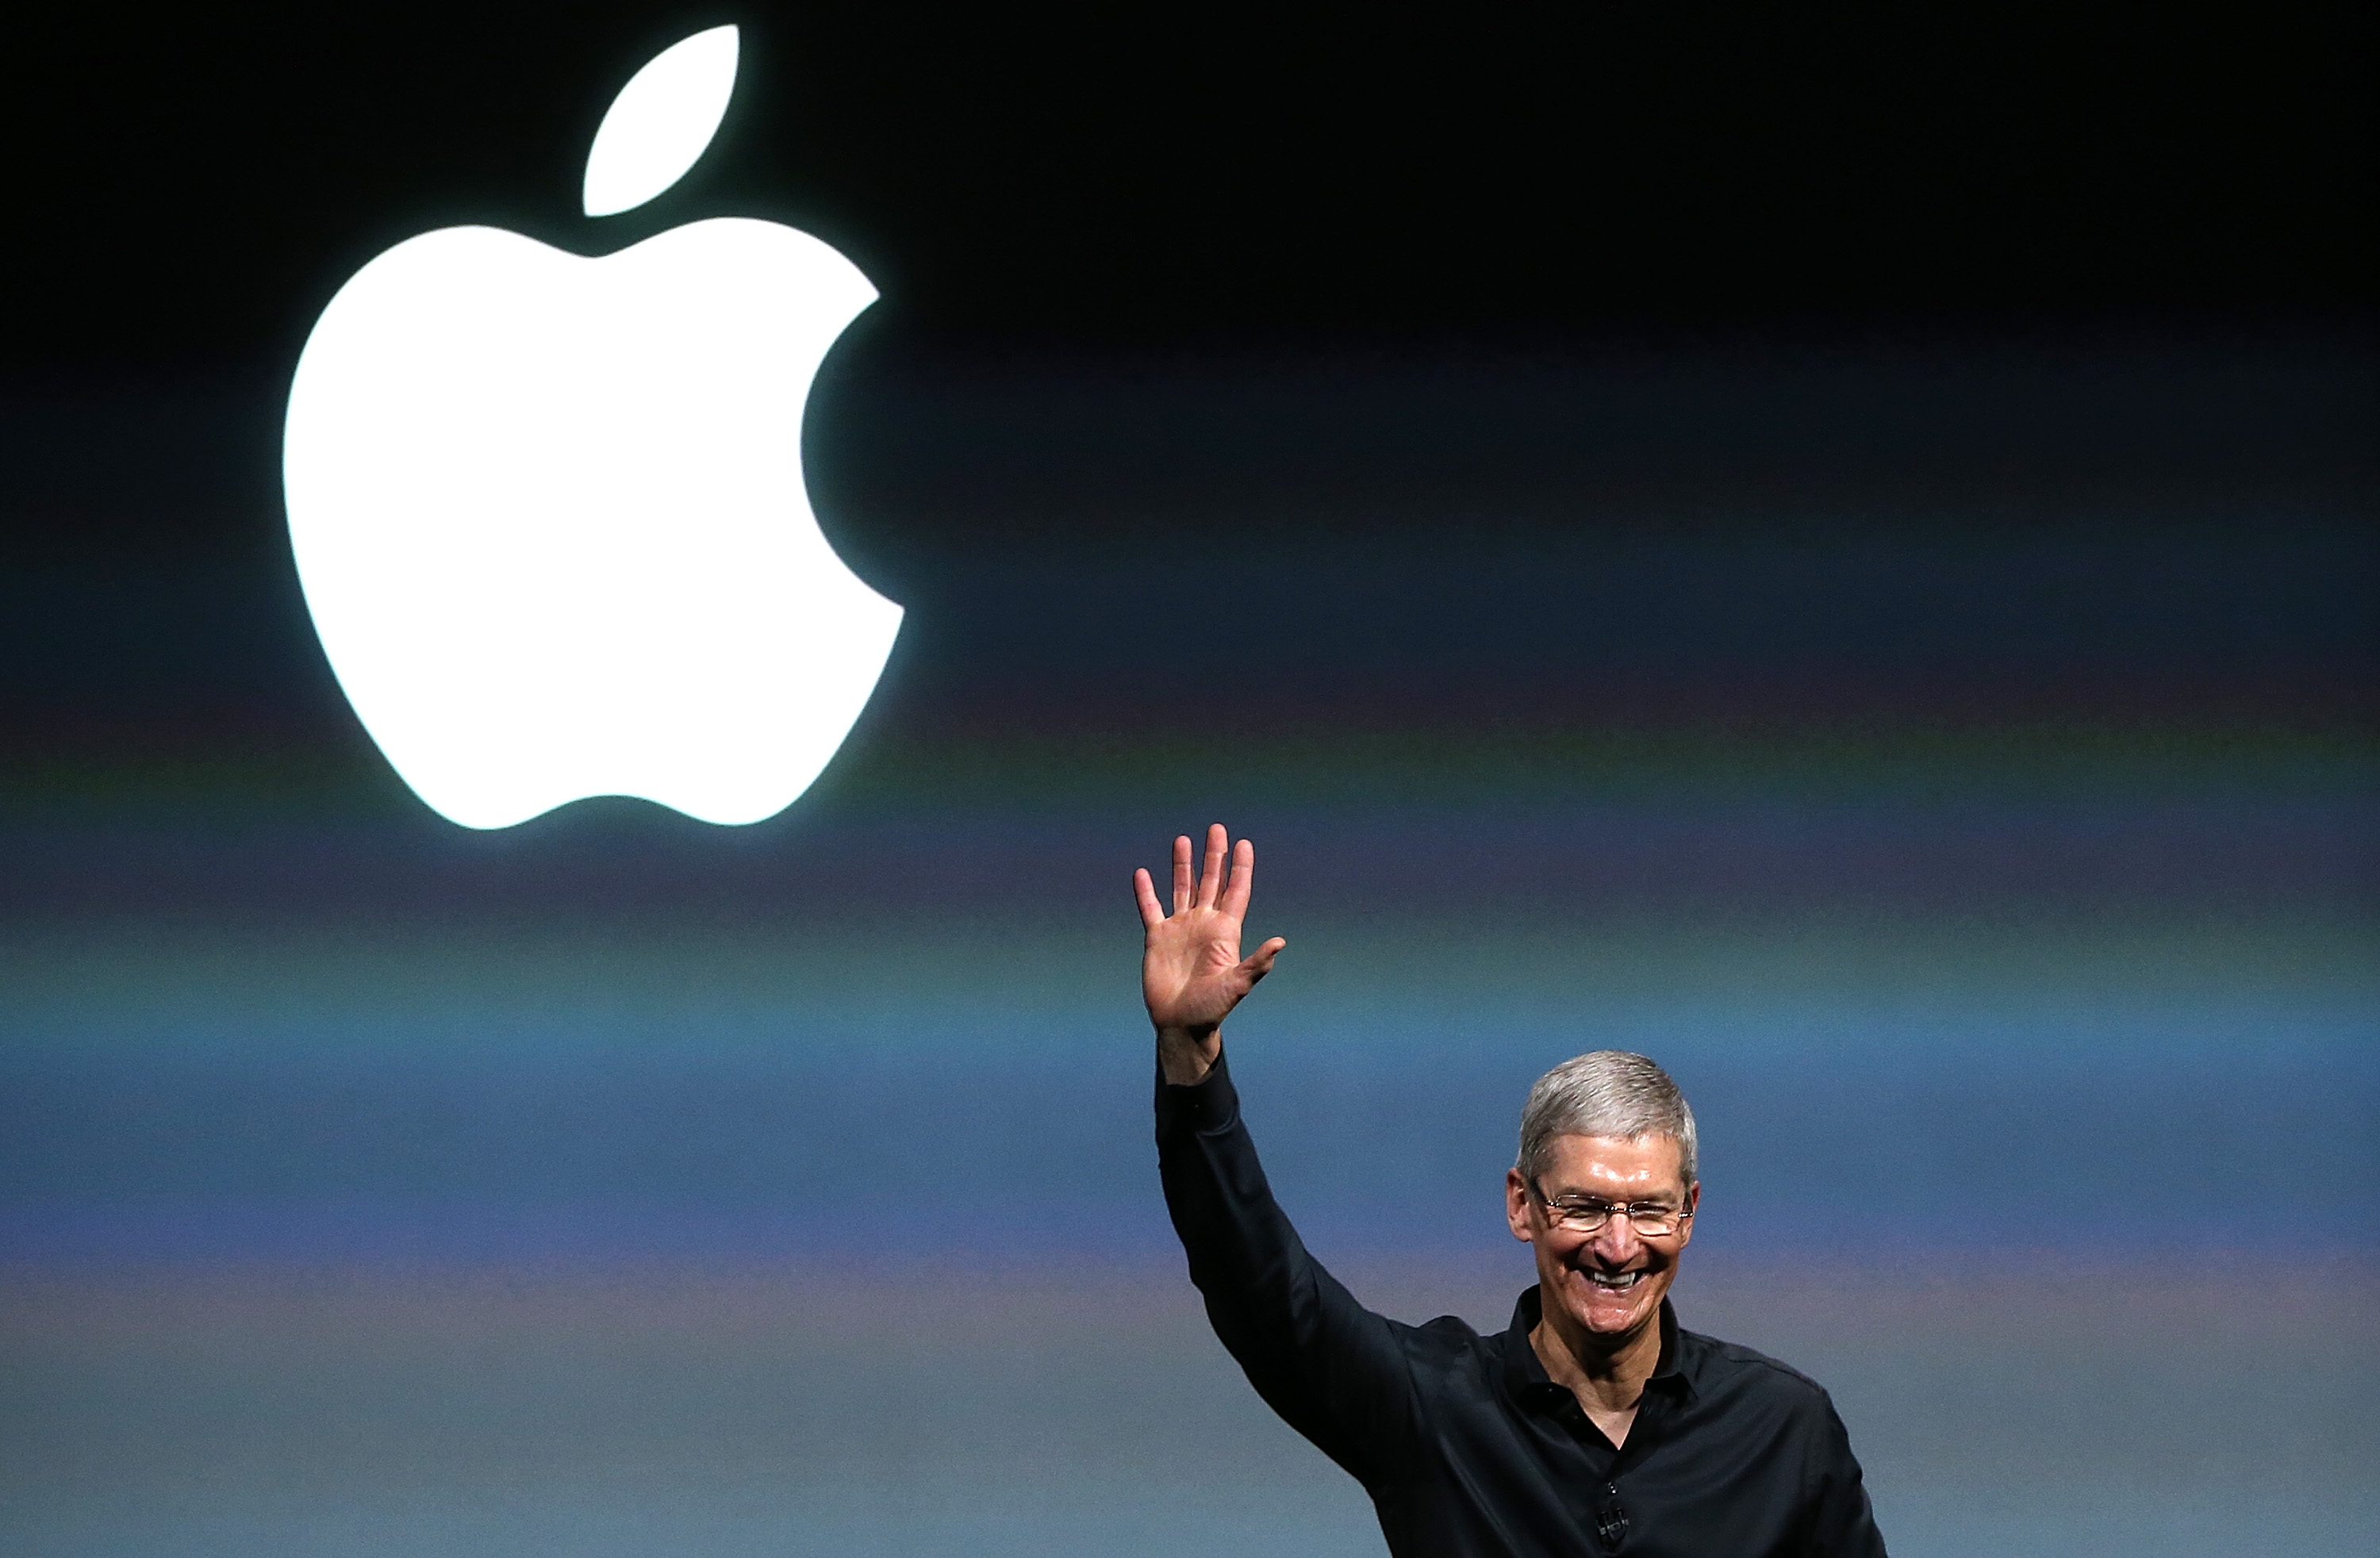 Apple CEO Tim Cook speaks during an Apple product announcement at the Apple campus on September 10, 2013 in Cupertino, California.